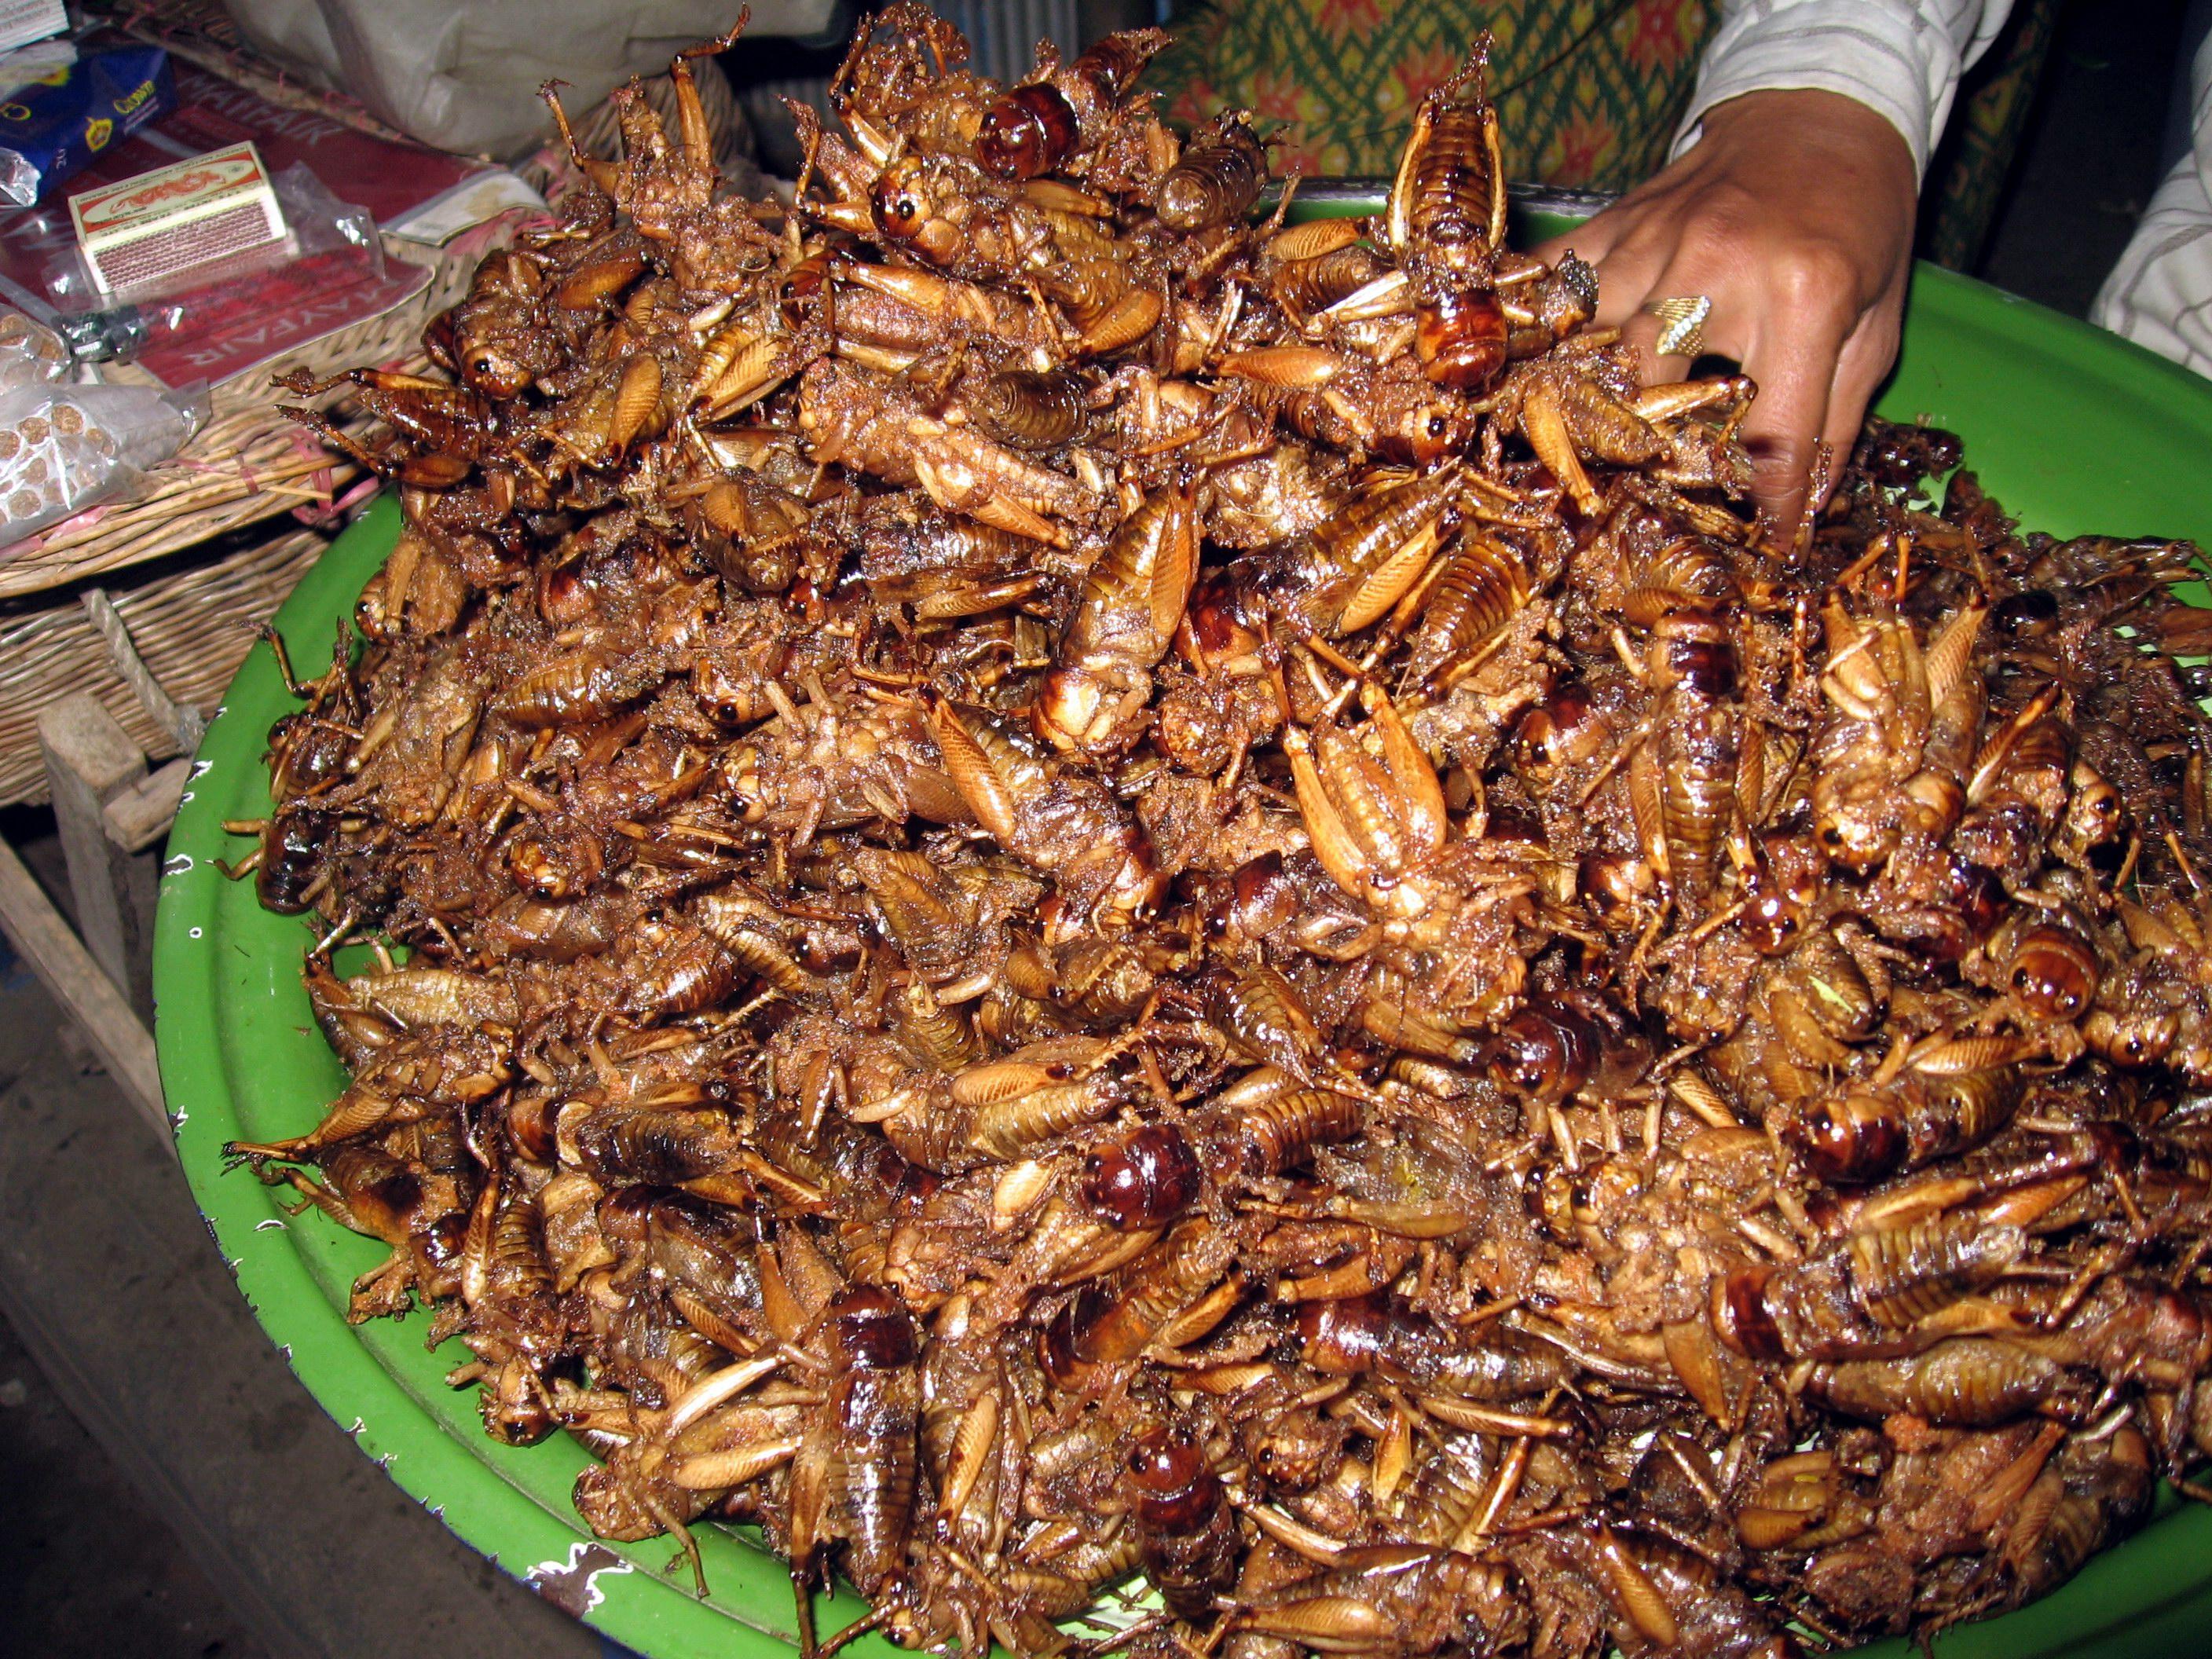 Fried_crickets_in_Cambodia.jpg